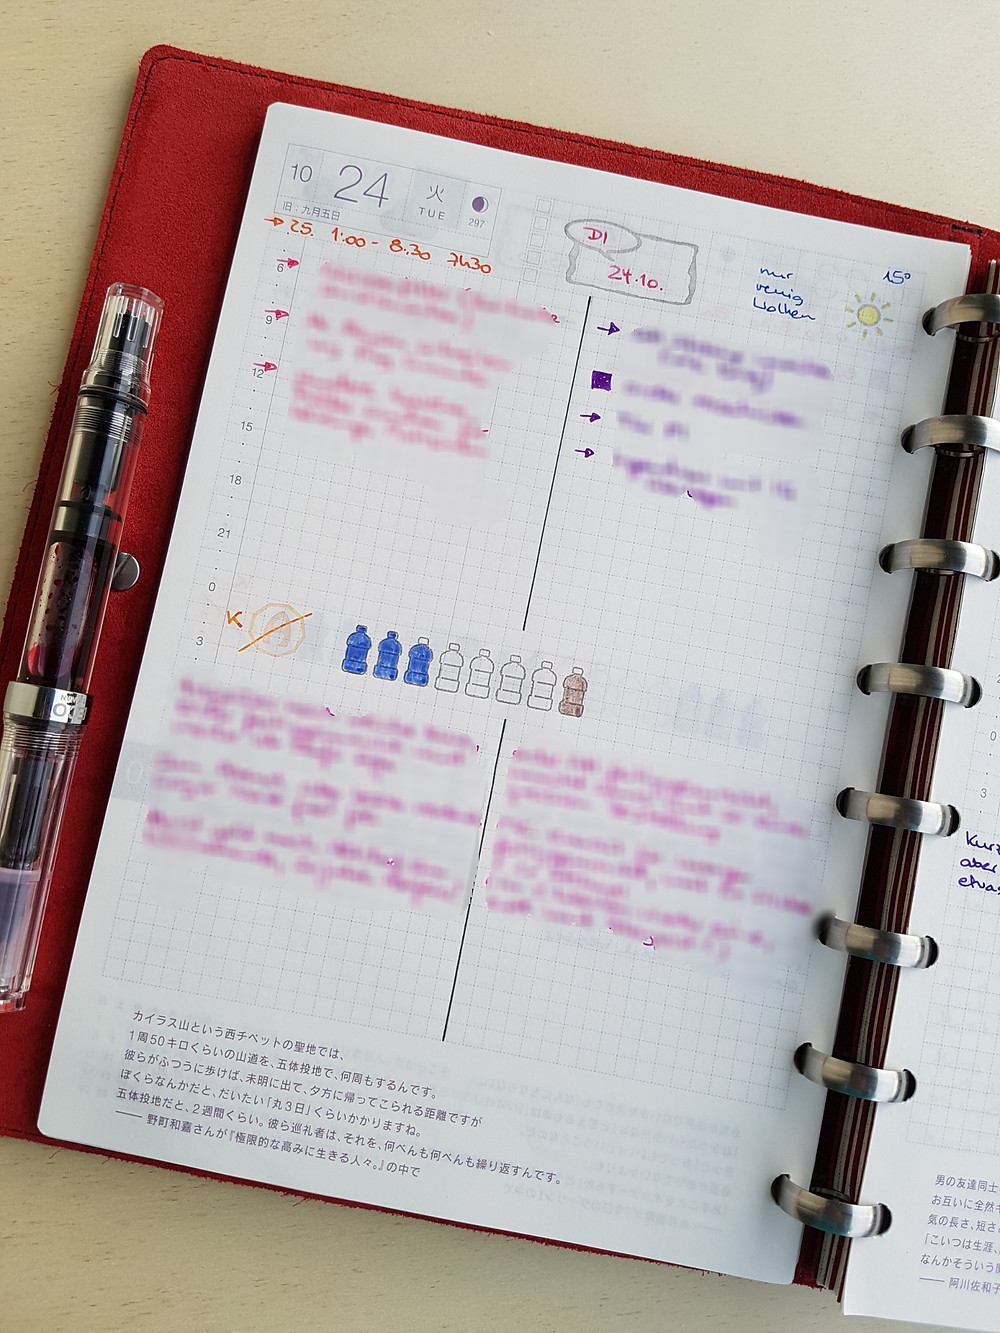 StickersSwissMade - blogpost - planner peace part 2 - Hobonichi Cousin and William Hannah discound notebook-6